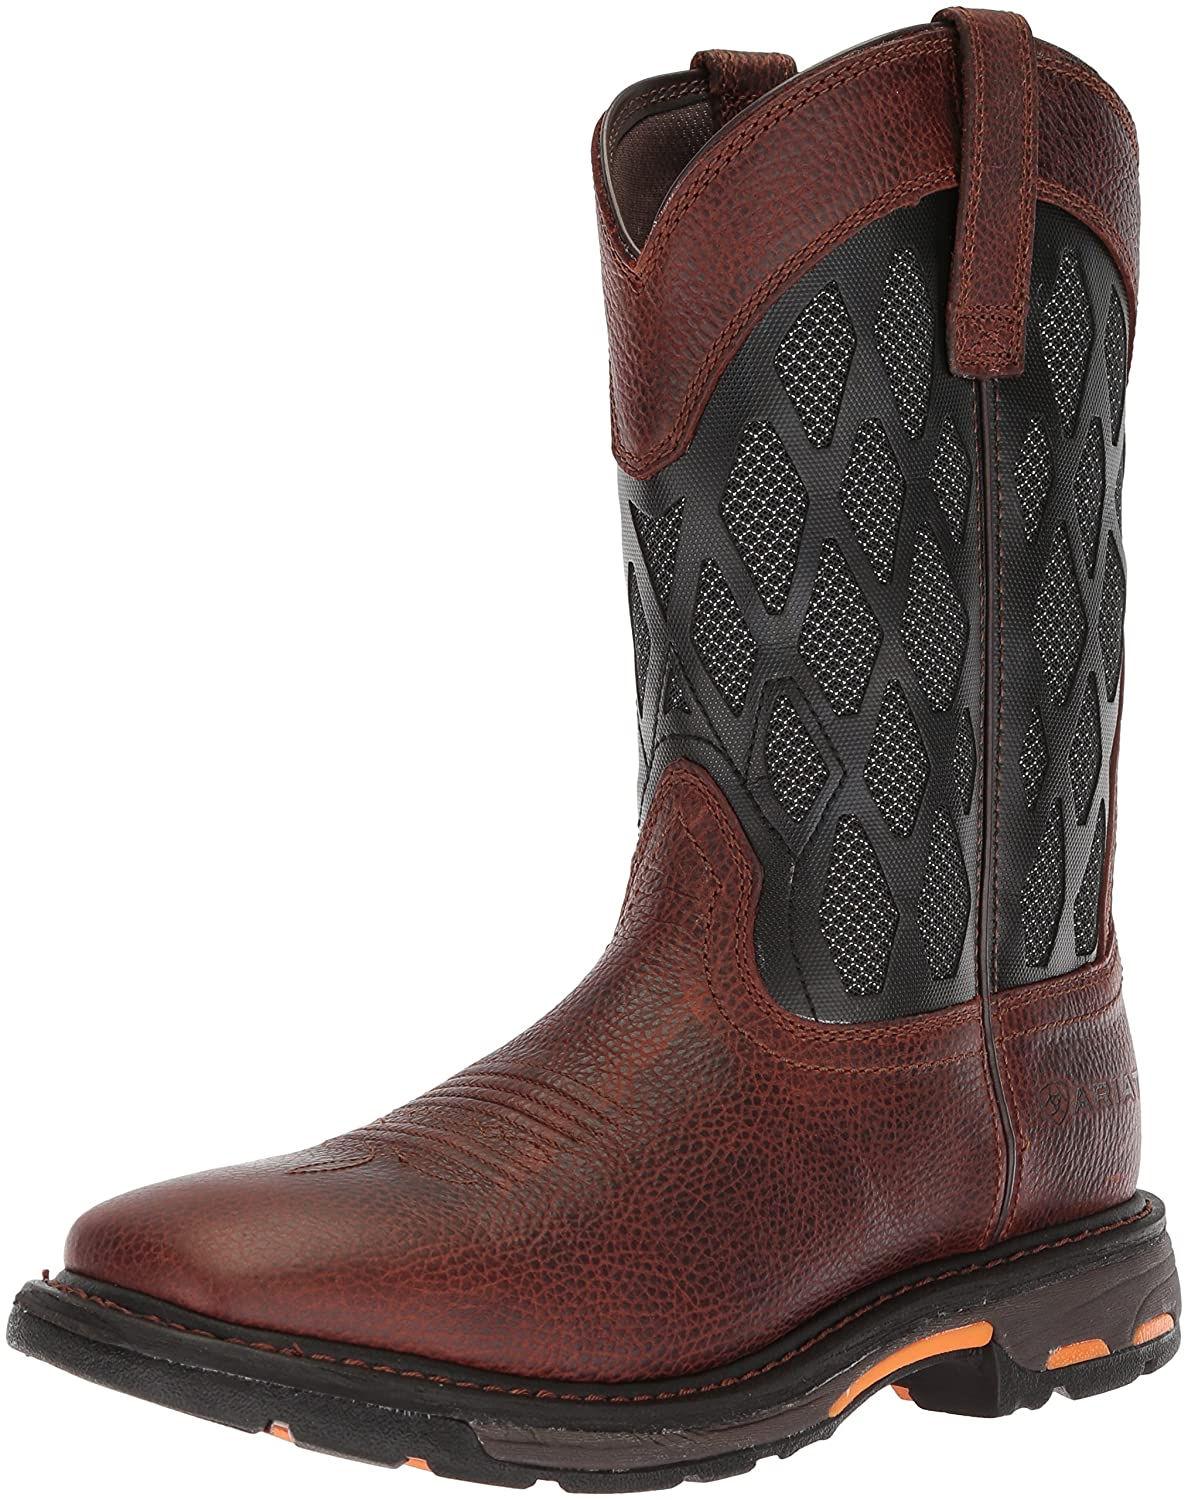 [Ariat] メンズ 10023094 Brown Ruddy/Charcoal B076RCJXJJ